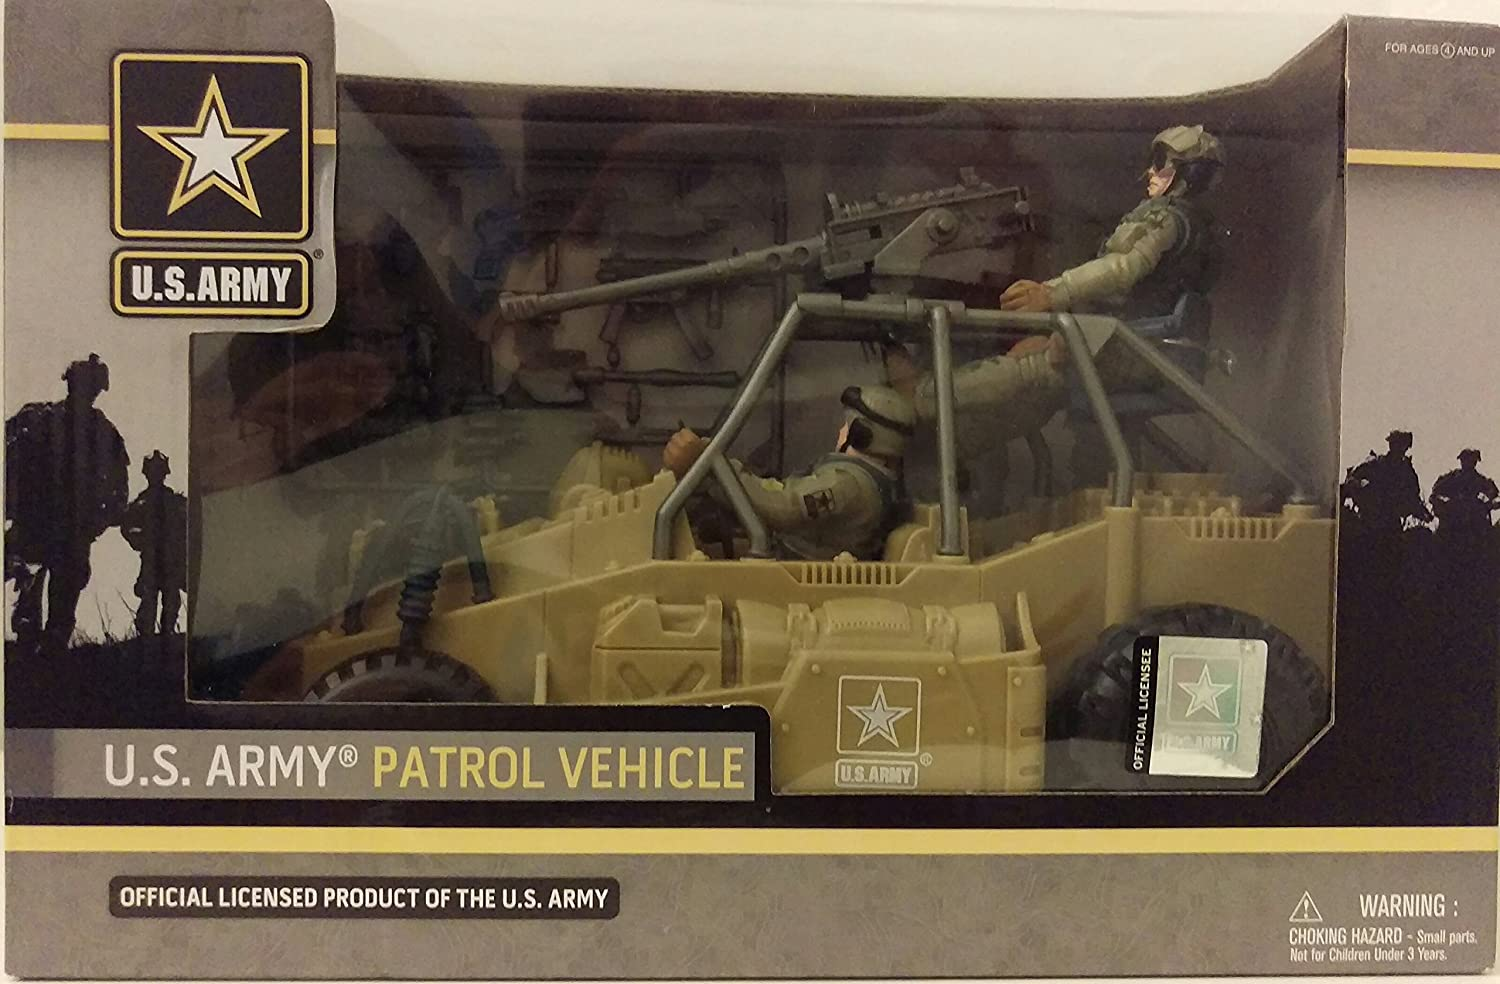 Official Licensed Product of the U.S. Army Army Patrol Vehicle U.S Excite Ltd.